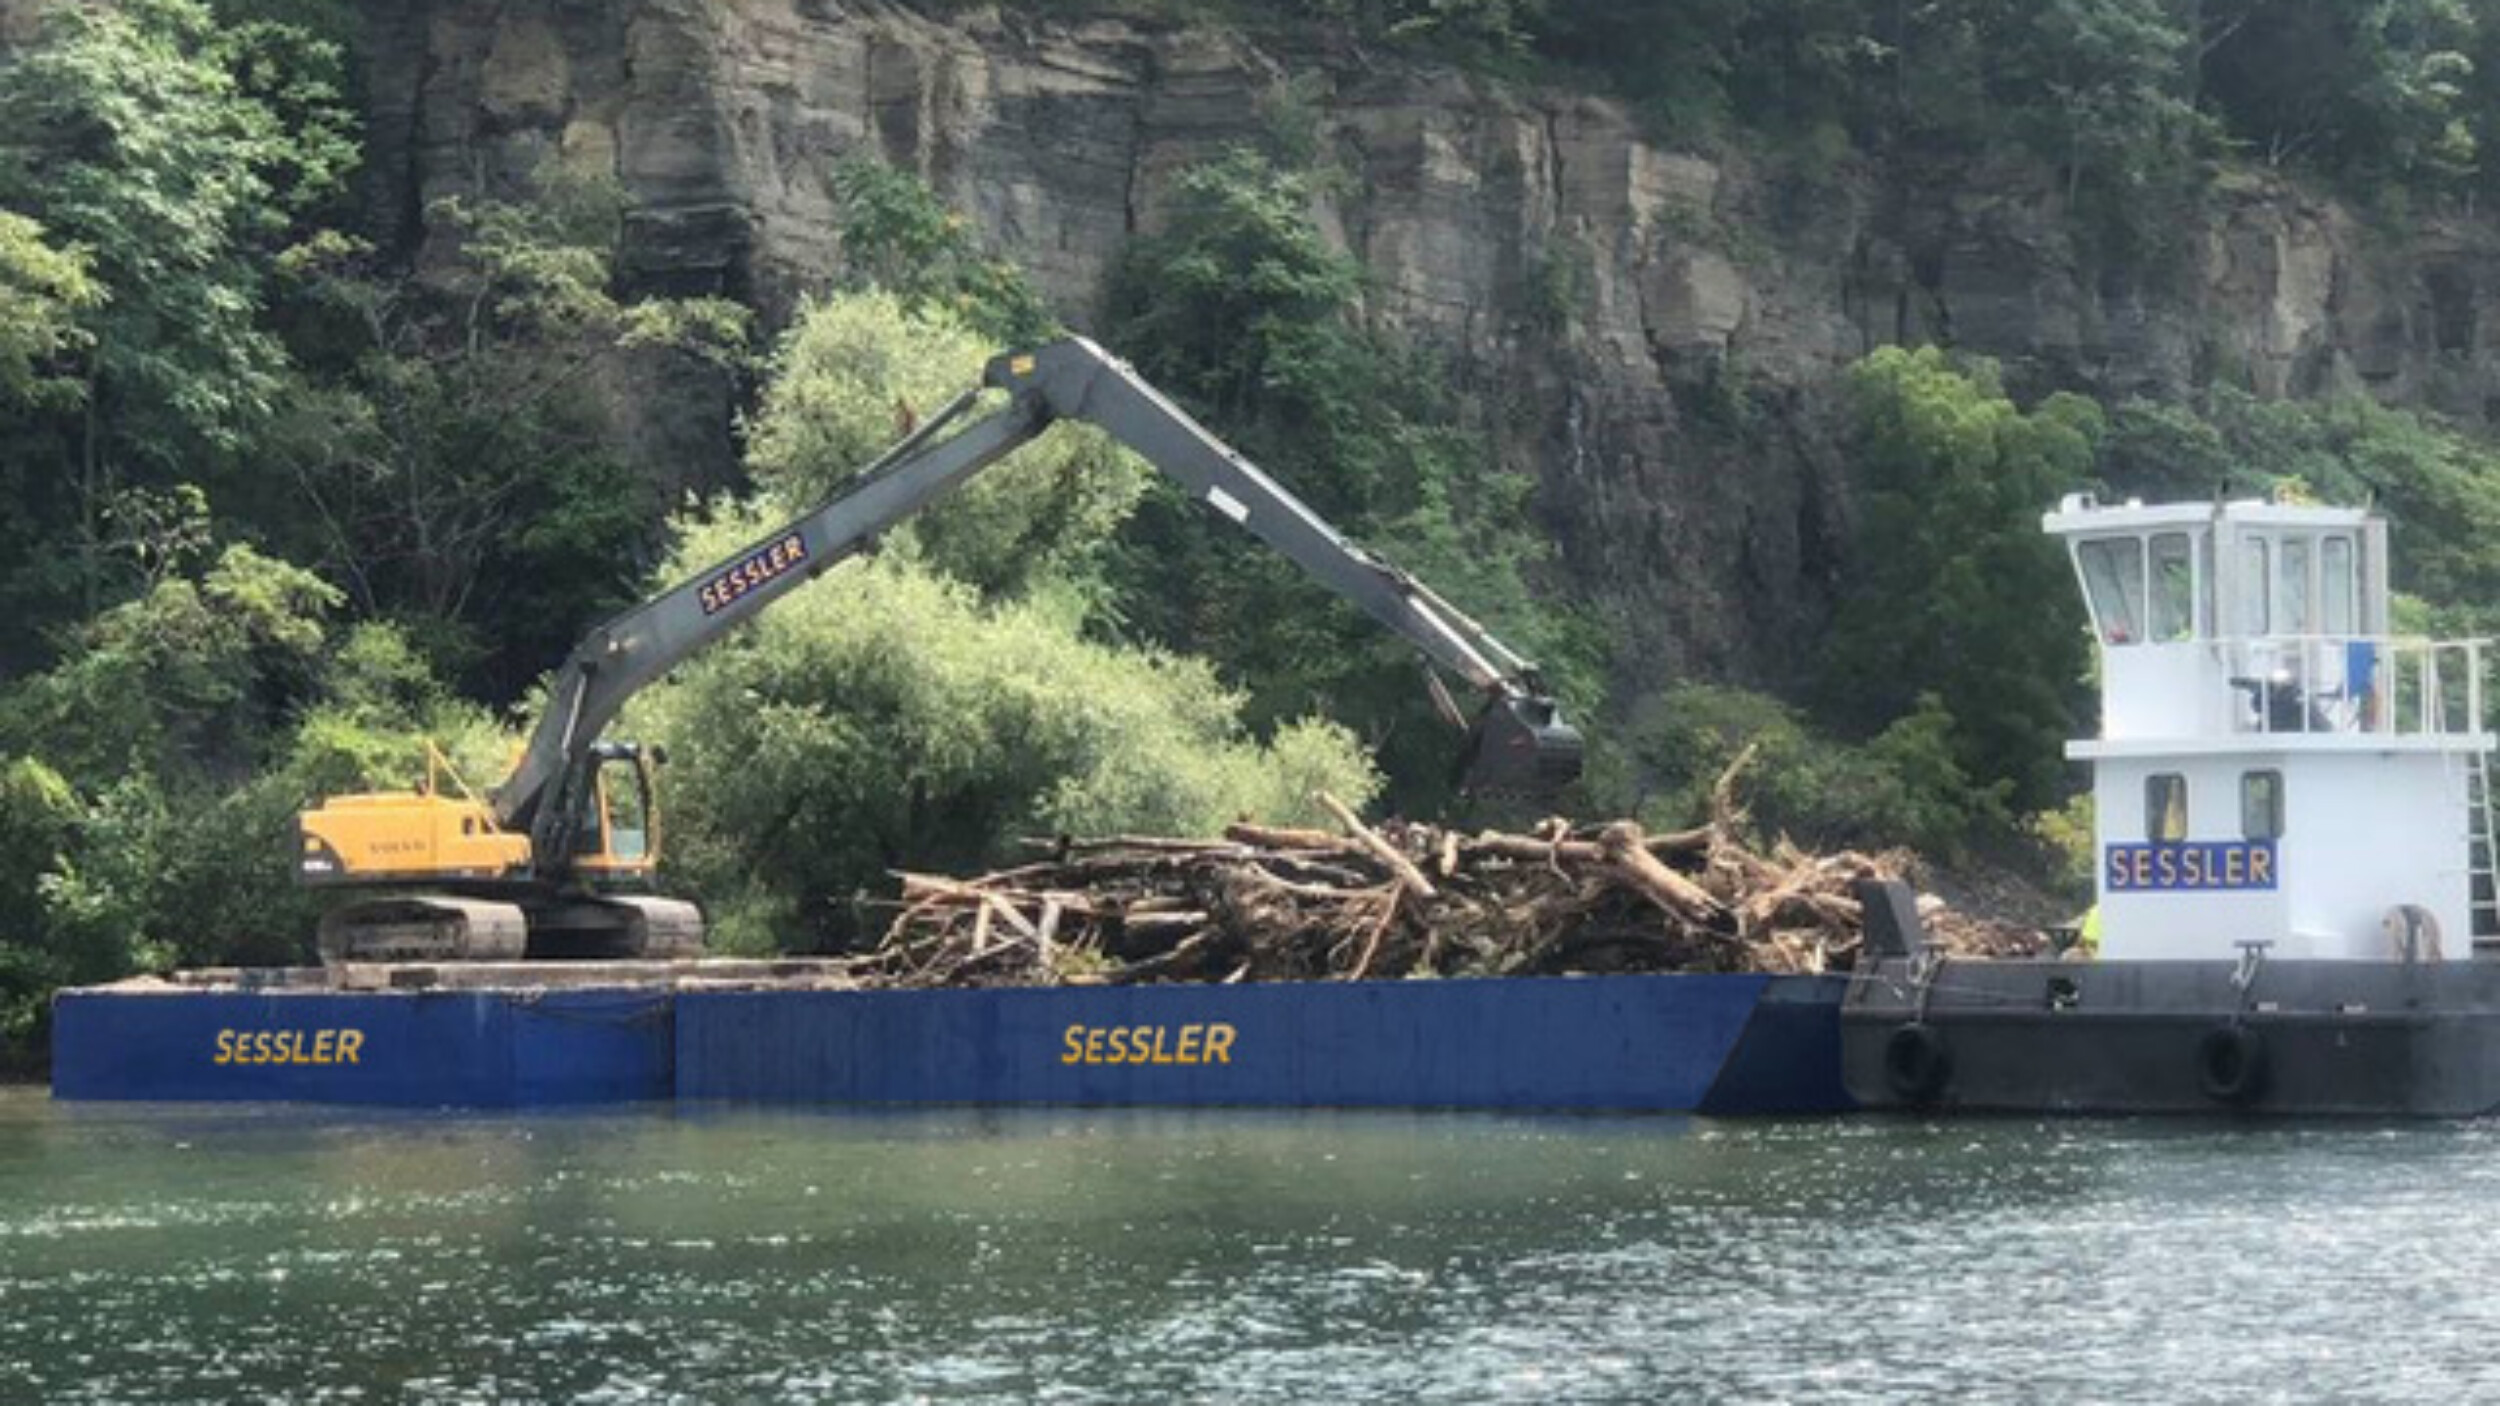 Sessler Wrecking Barge Marine Clean-Up